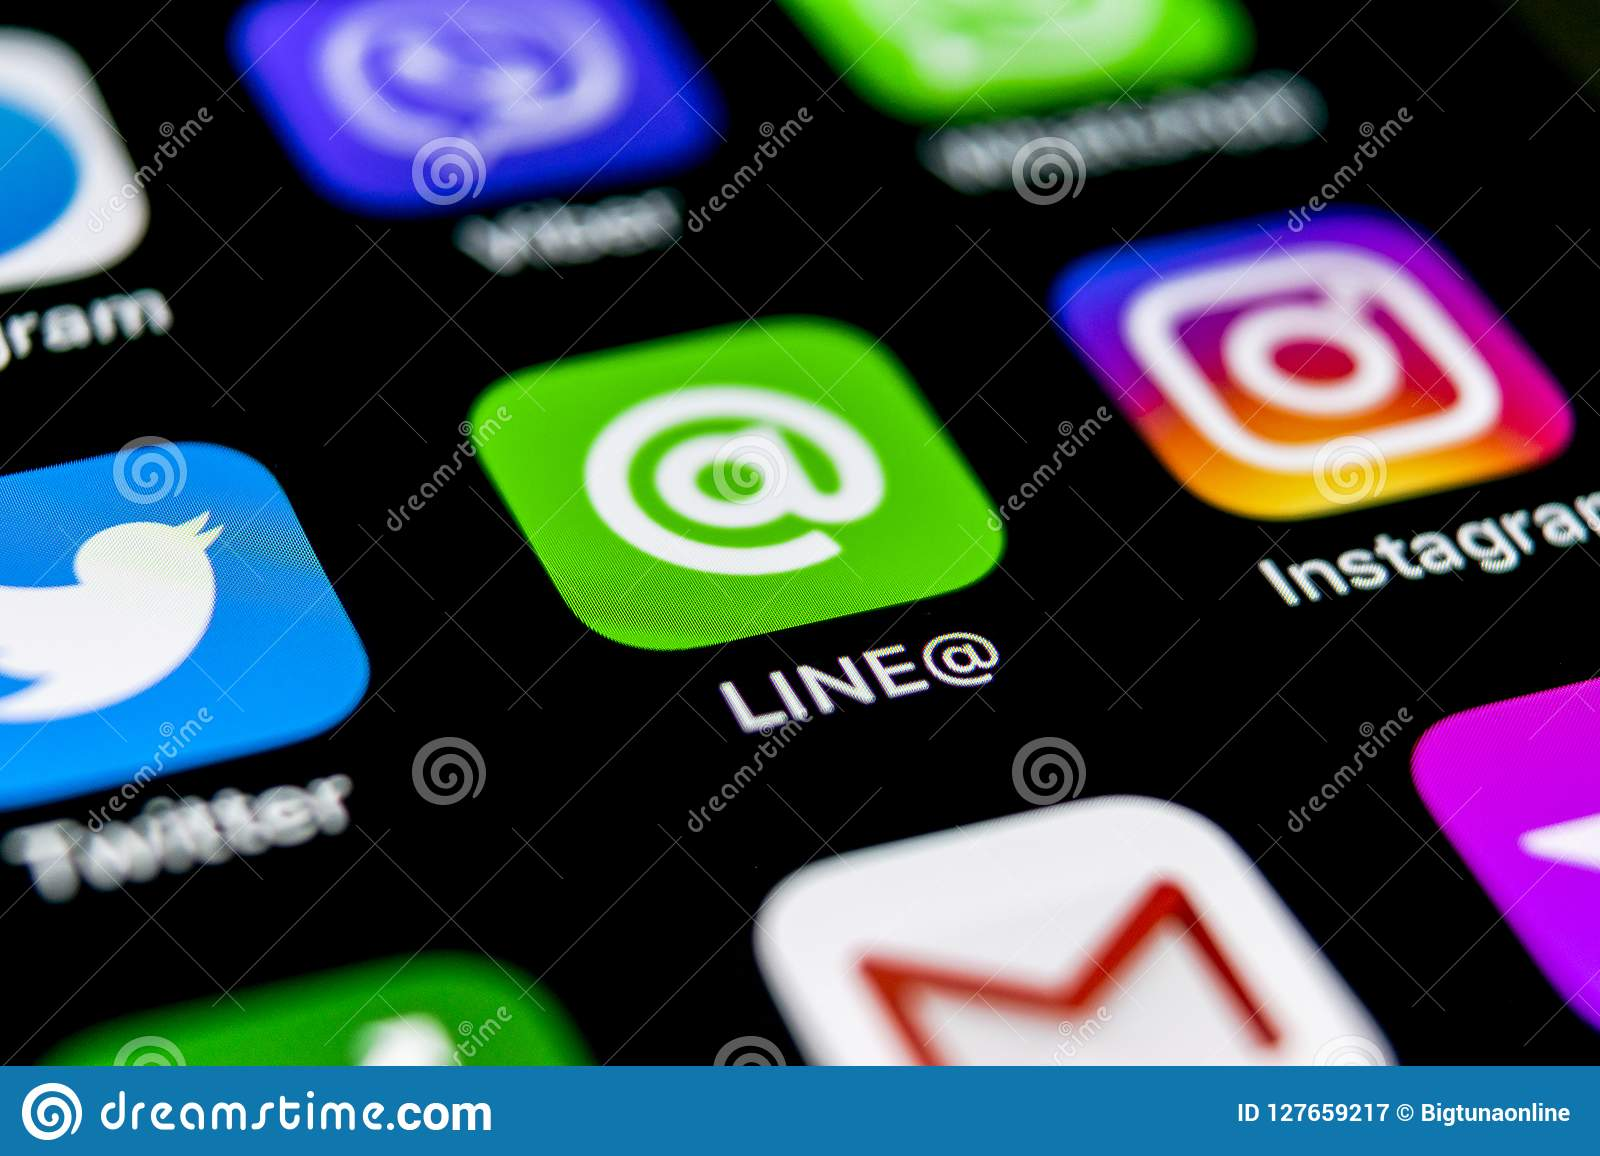 Line Application Icon On Apple IPhone X Screen Close-up  Line App